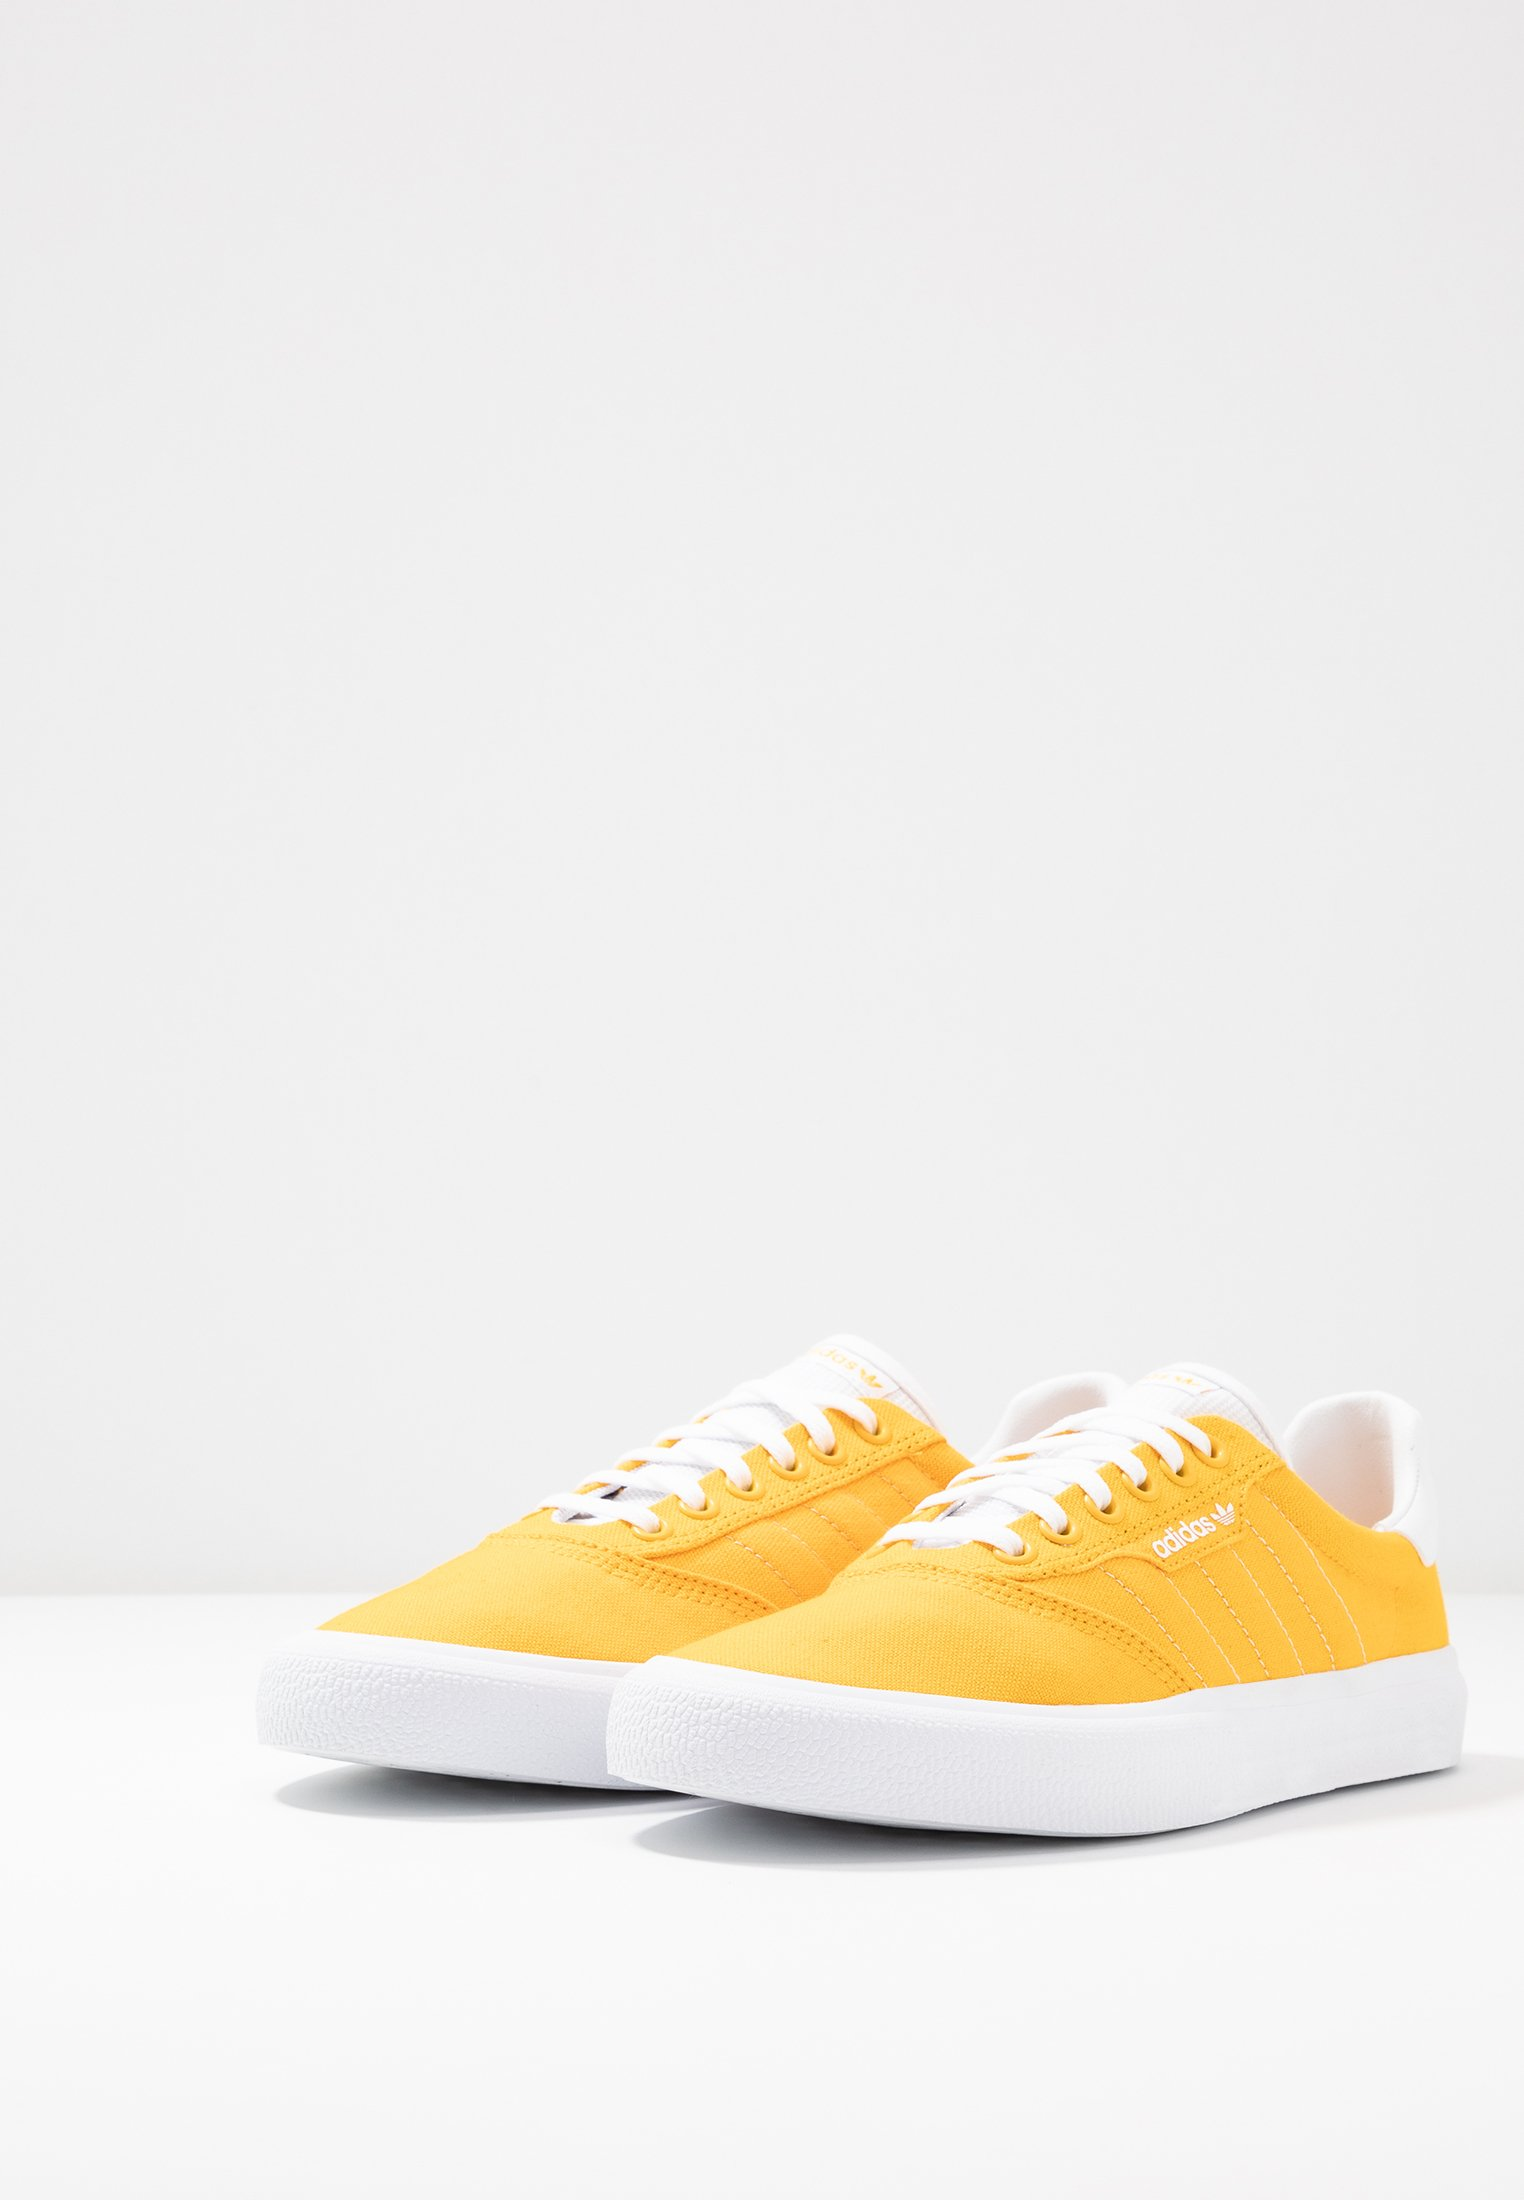 Adidas Originals 3mc - Sneaker Low Activ Gold/footwear White Black Friday